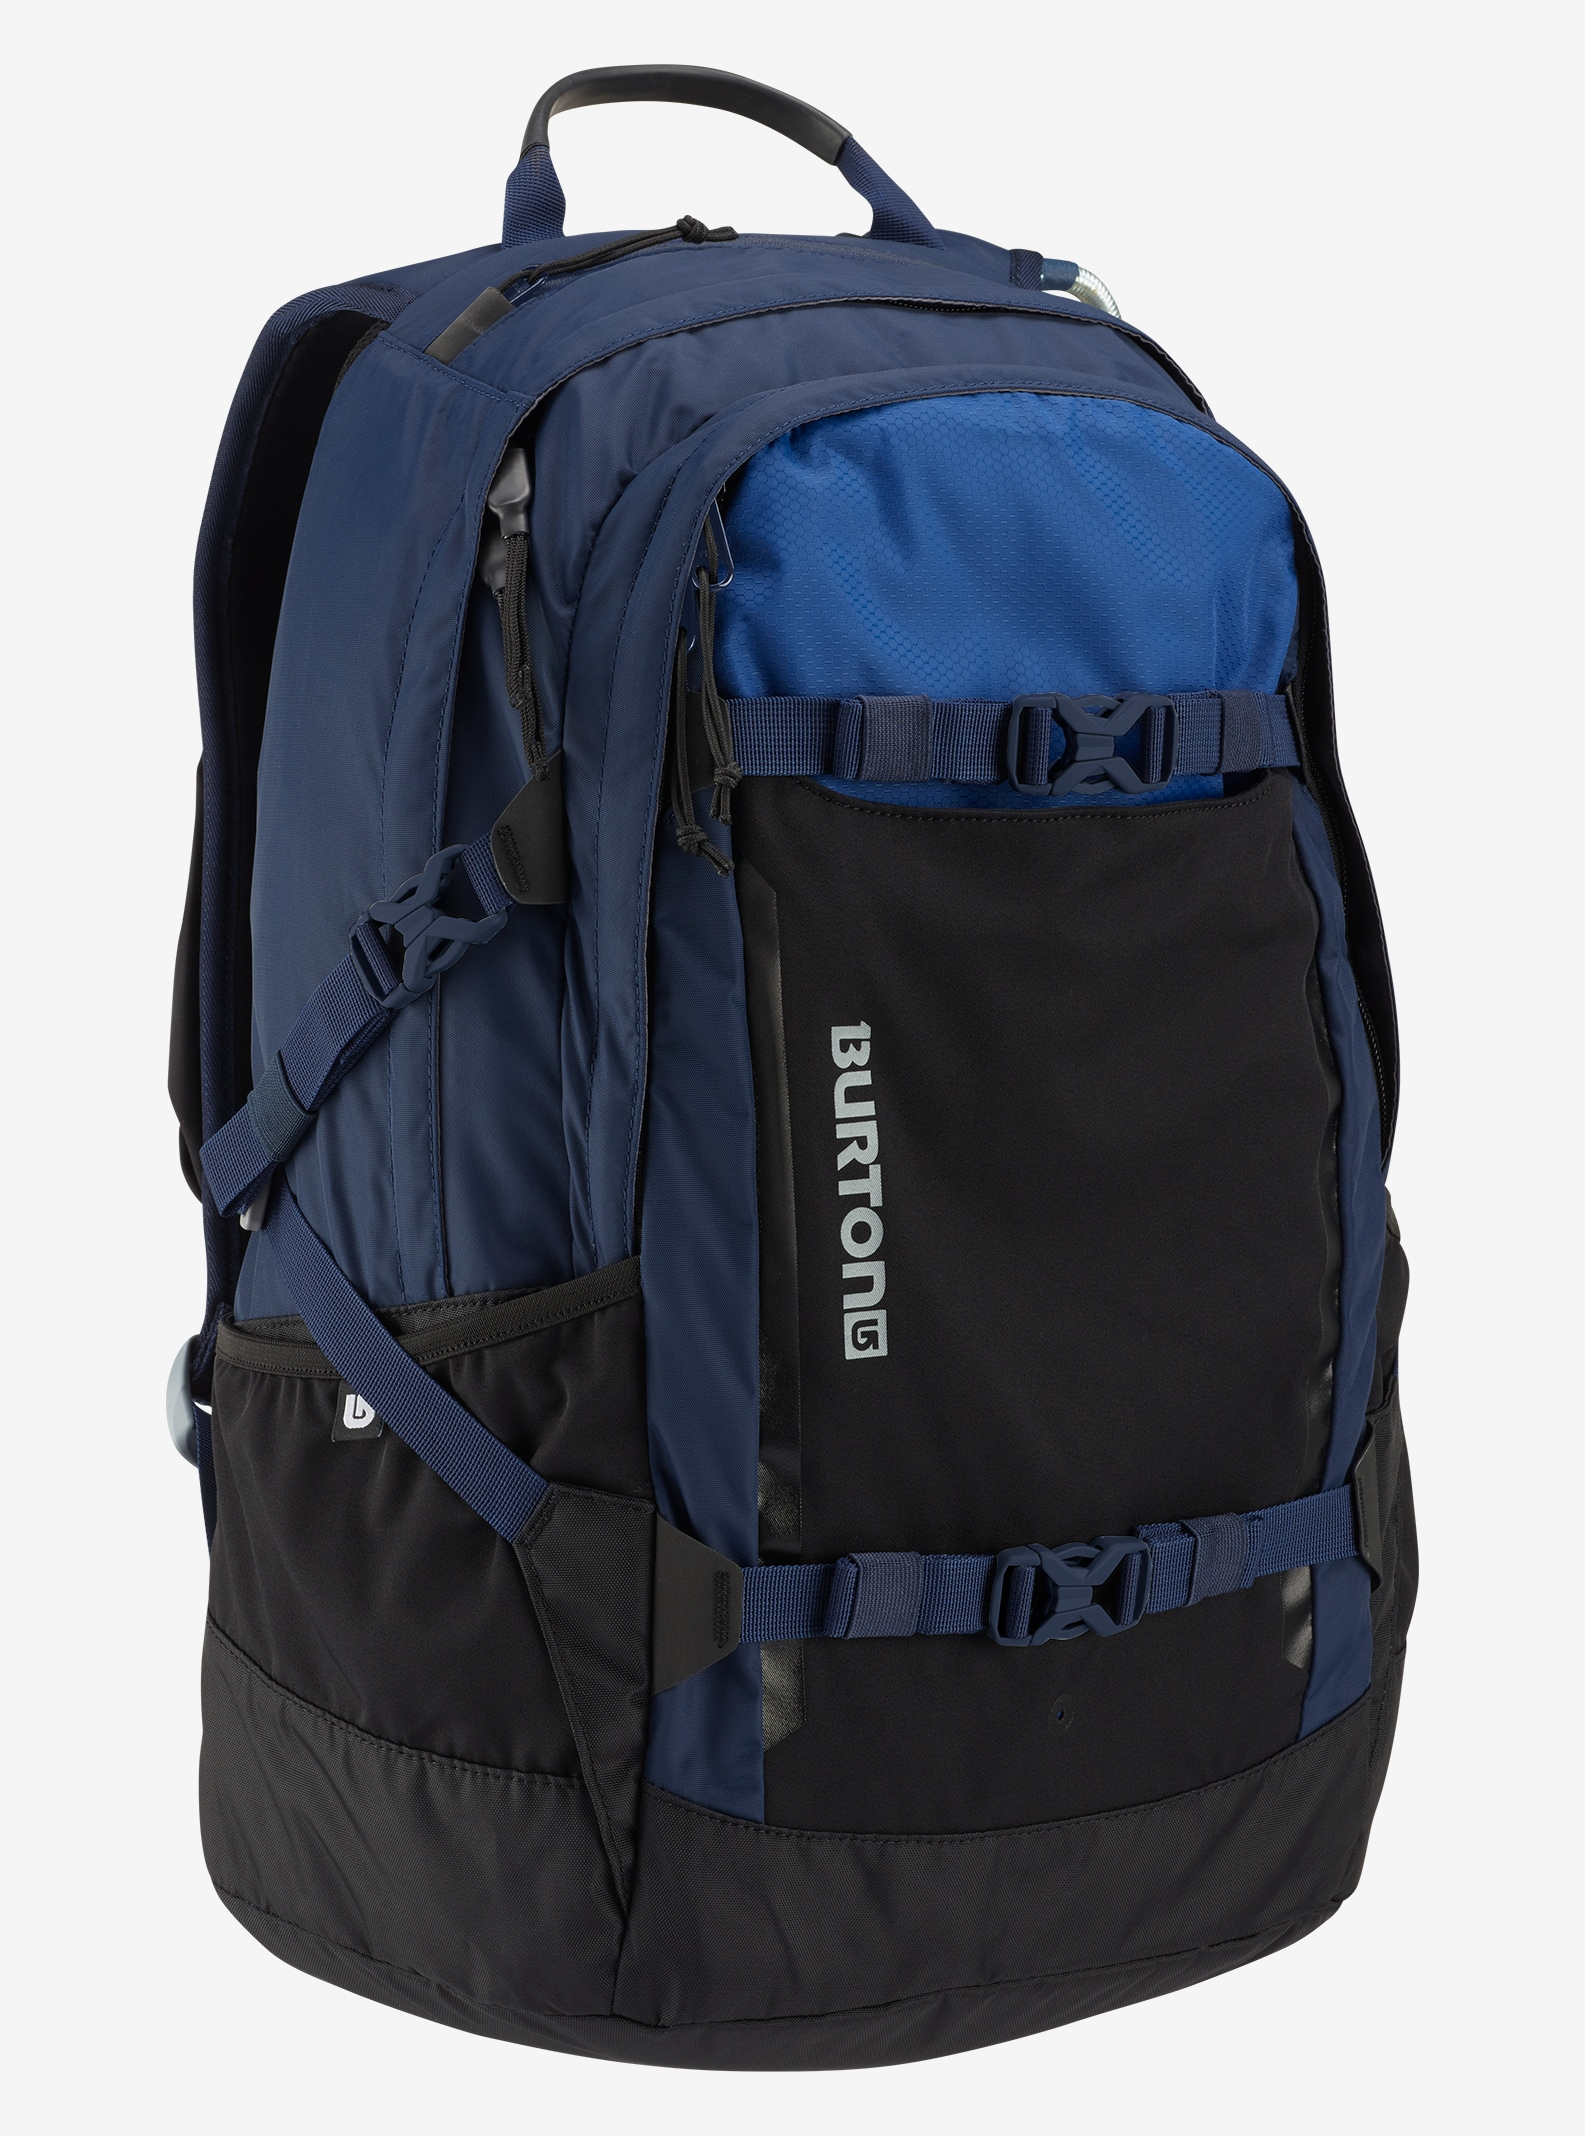 Burton Day Hiker Pro 28L Backpack shown in Eclipse Honeycomb